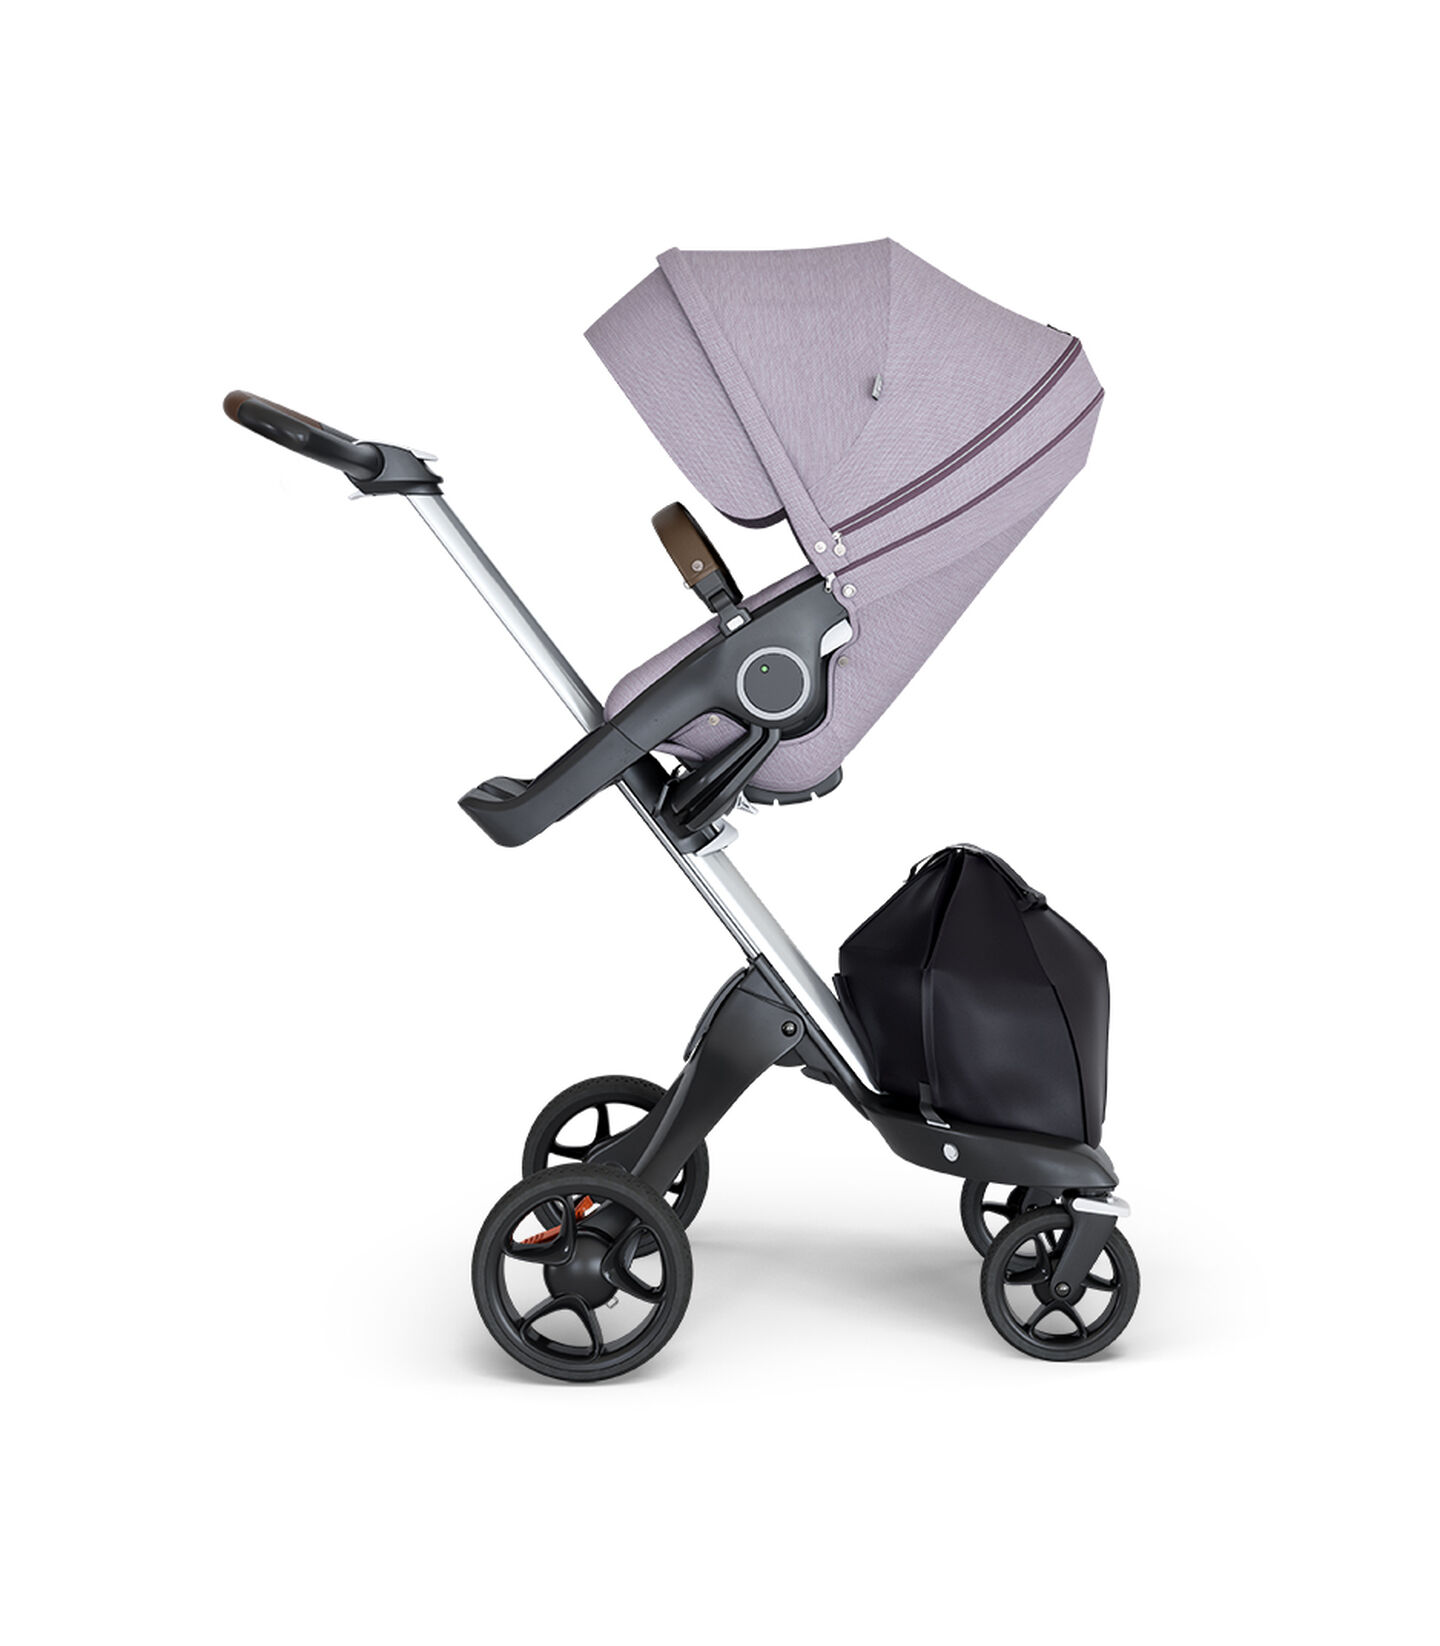 Stokke® Xplory® wtih Silver Chassis and Leatherette Brown handle. Stokke® Stroller Seat Brushed Lilac. view 2